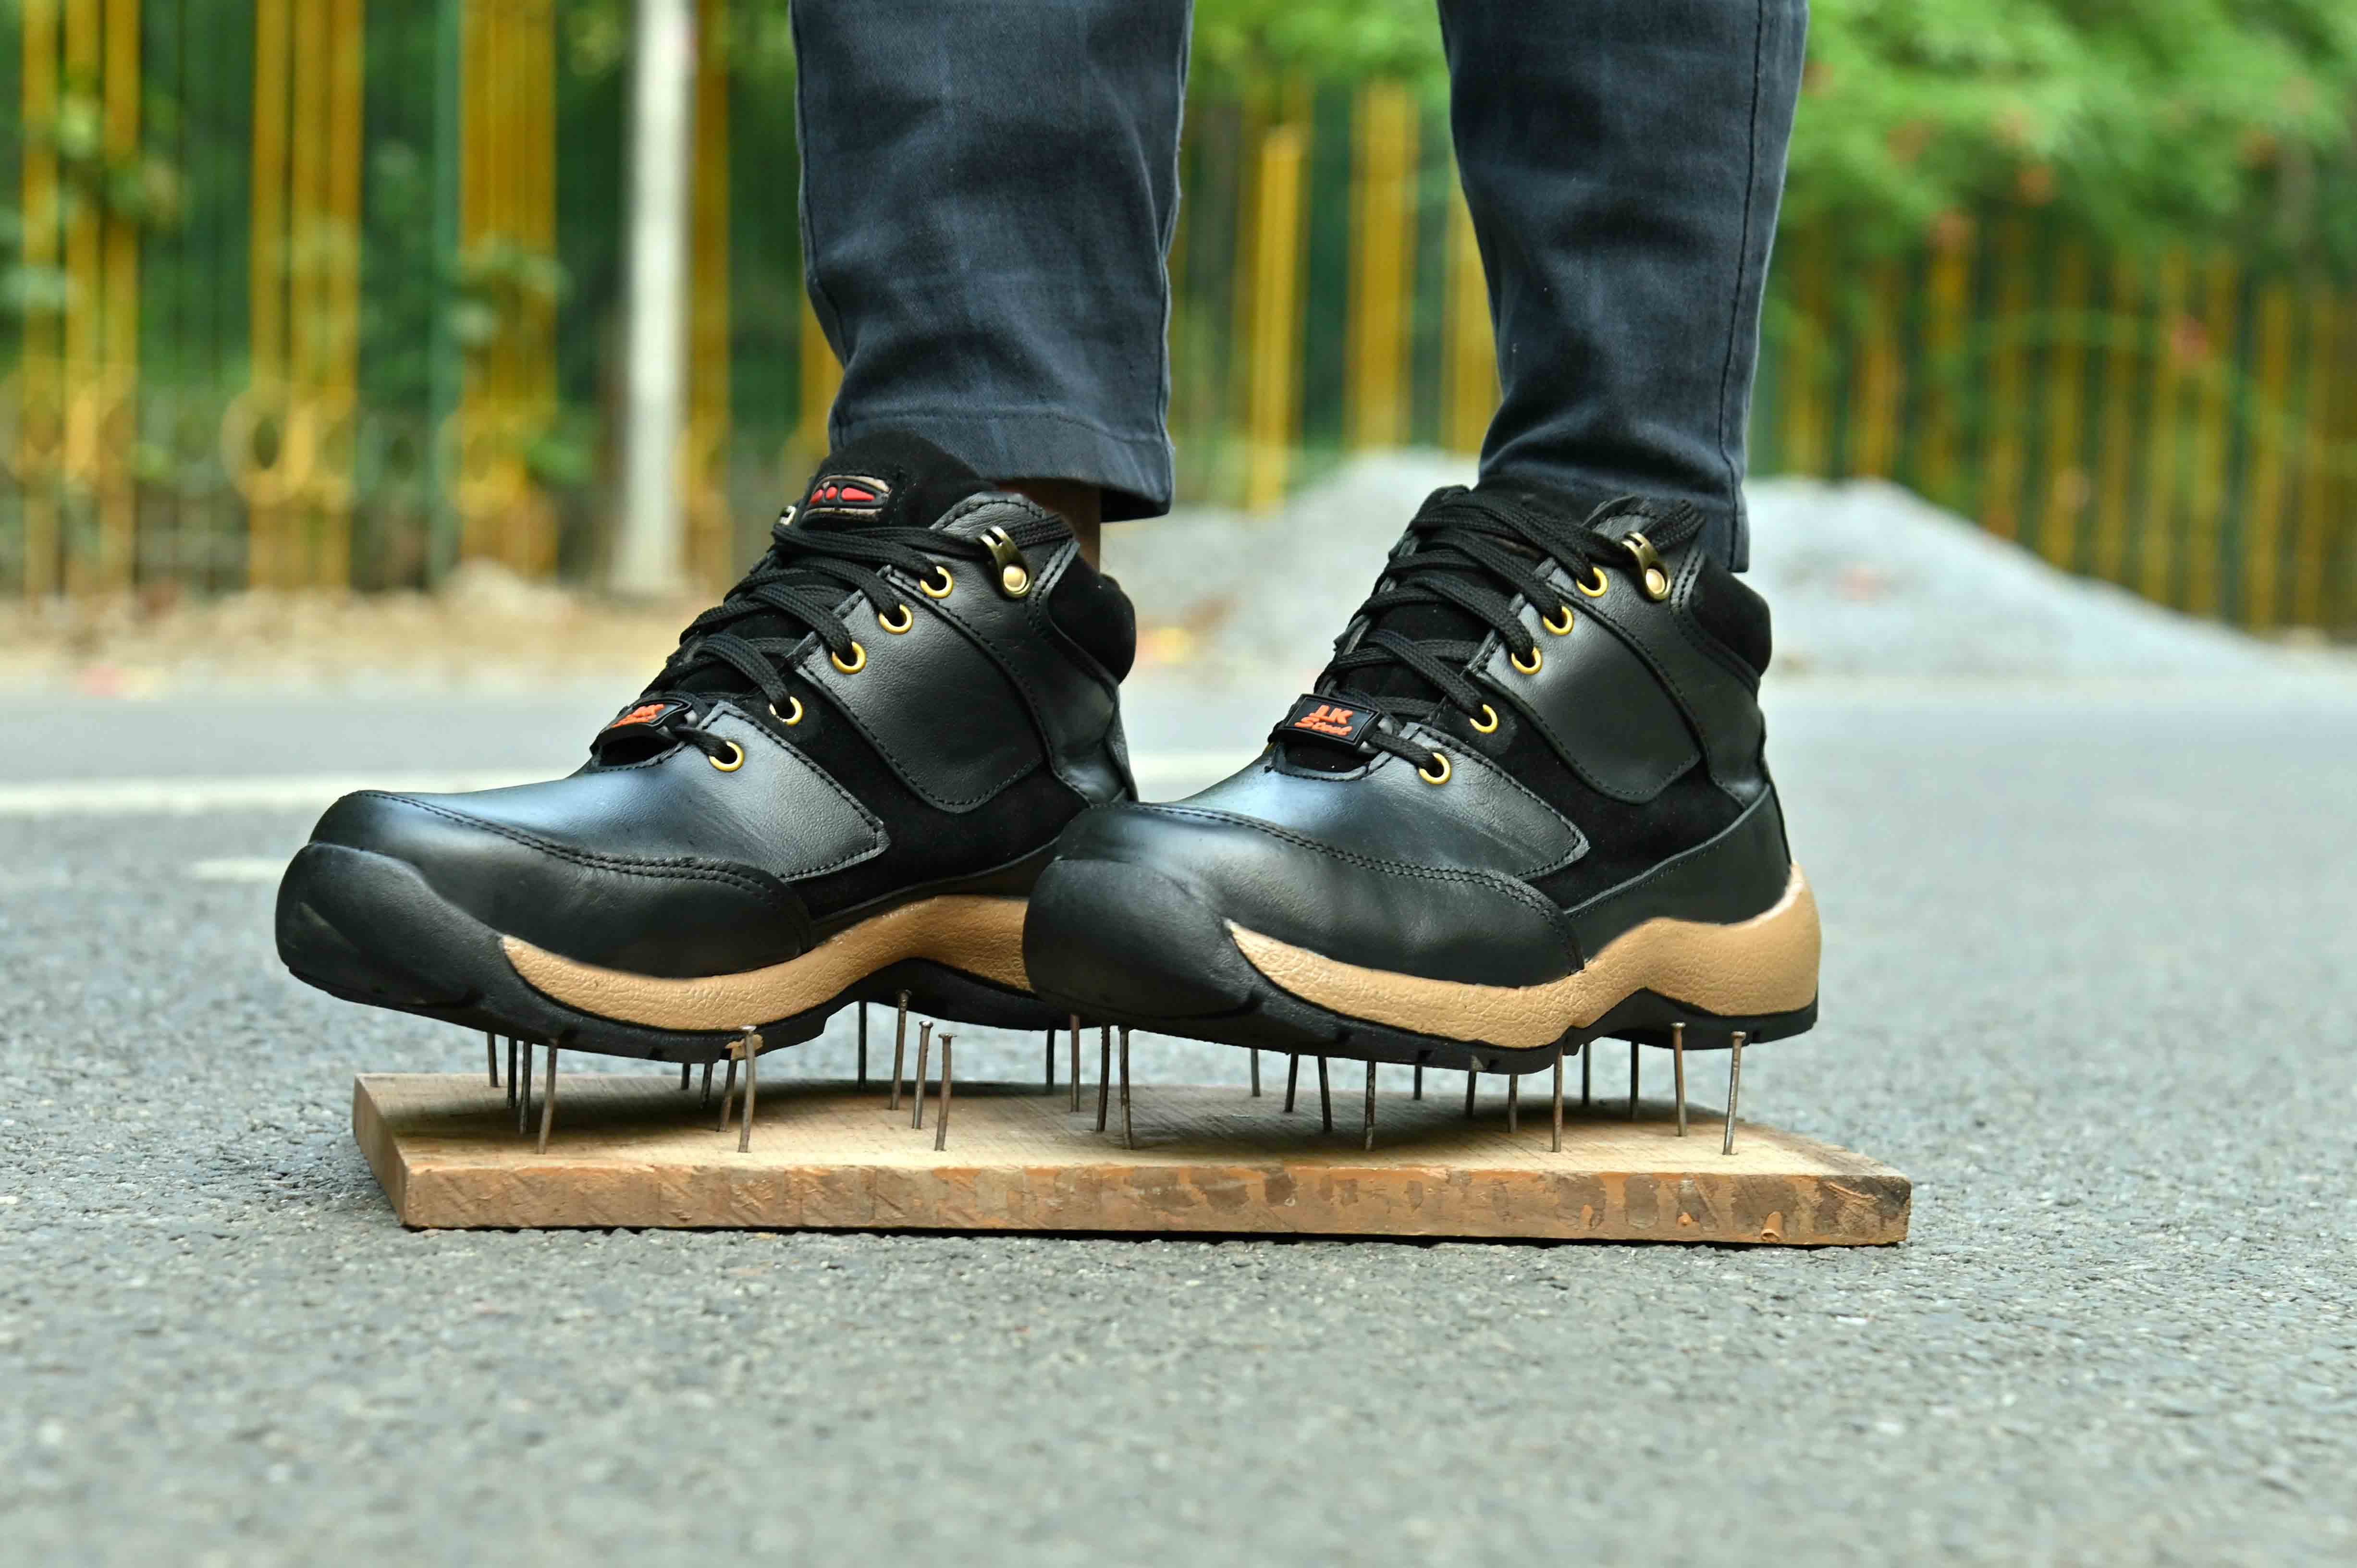 JK STEEL Original Safety Shoes Presents Genuine Leather Stylish Black Safety JKPSF144BLK (Black, 6-10, 8 PAIR)